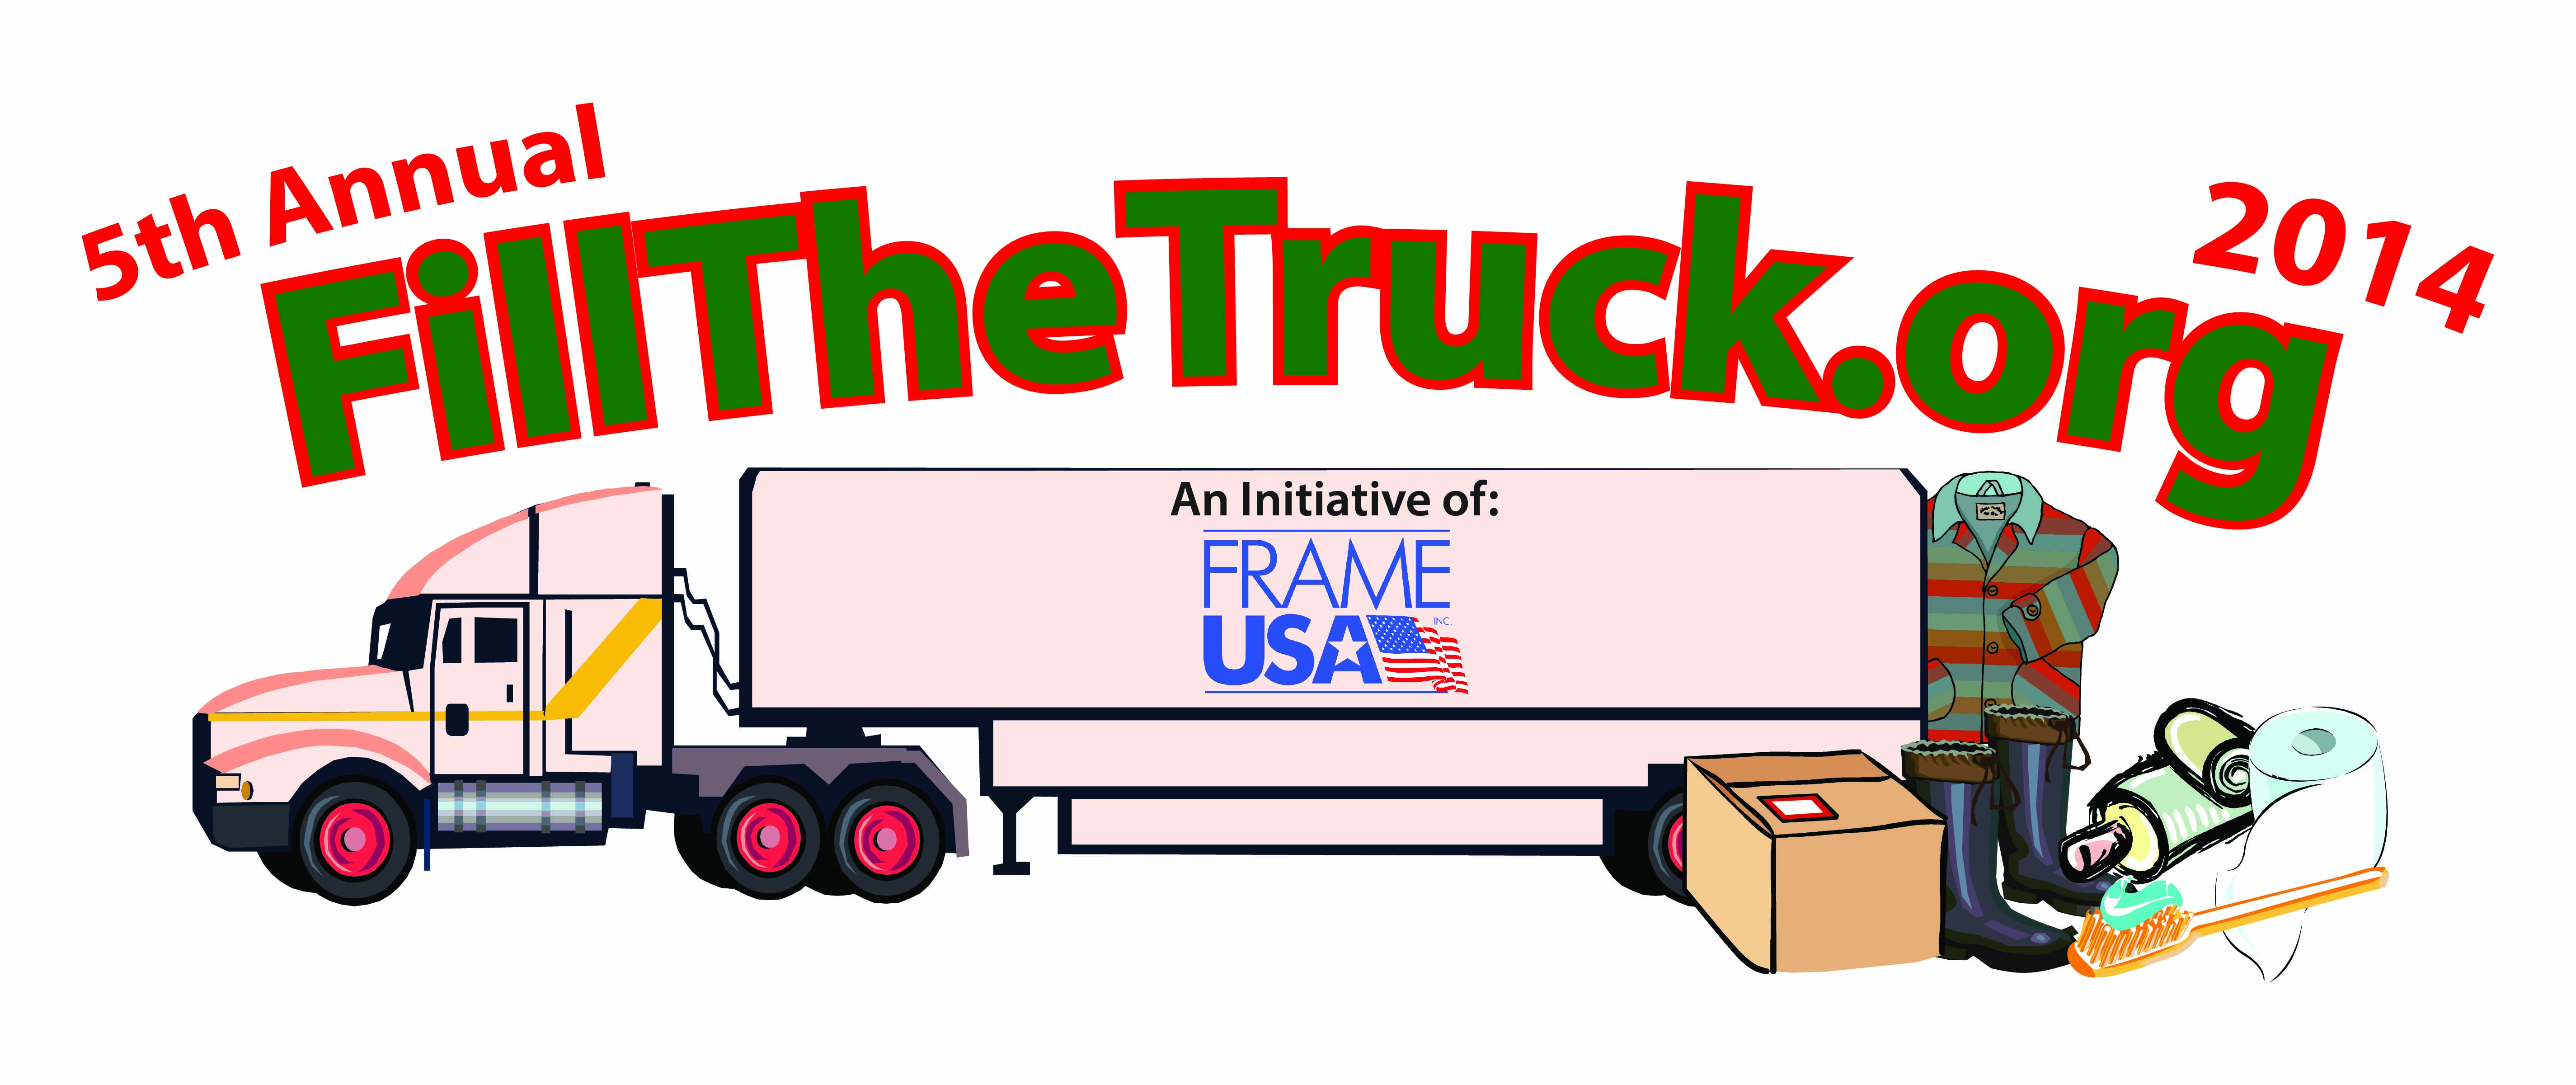 Fill The Truck 2014